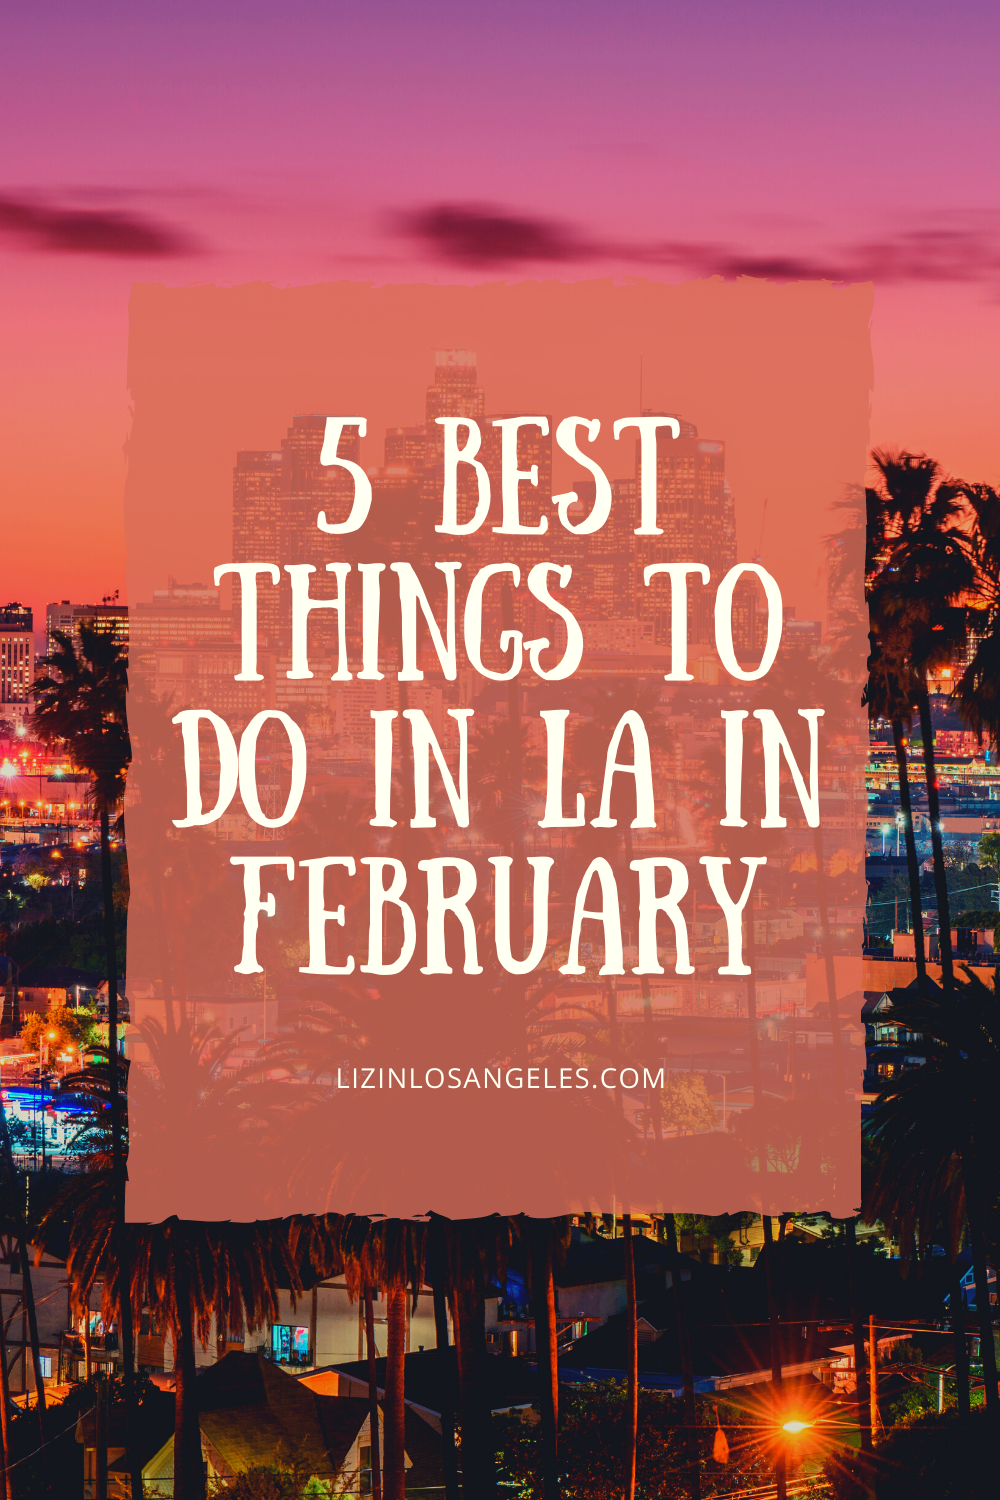 5 Best Things to Do in LA in February, a blog post by Liz in Los Angeles, top Los Angeles blogger, an image of Chinatown Los Angeles